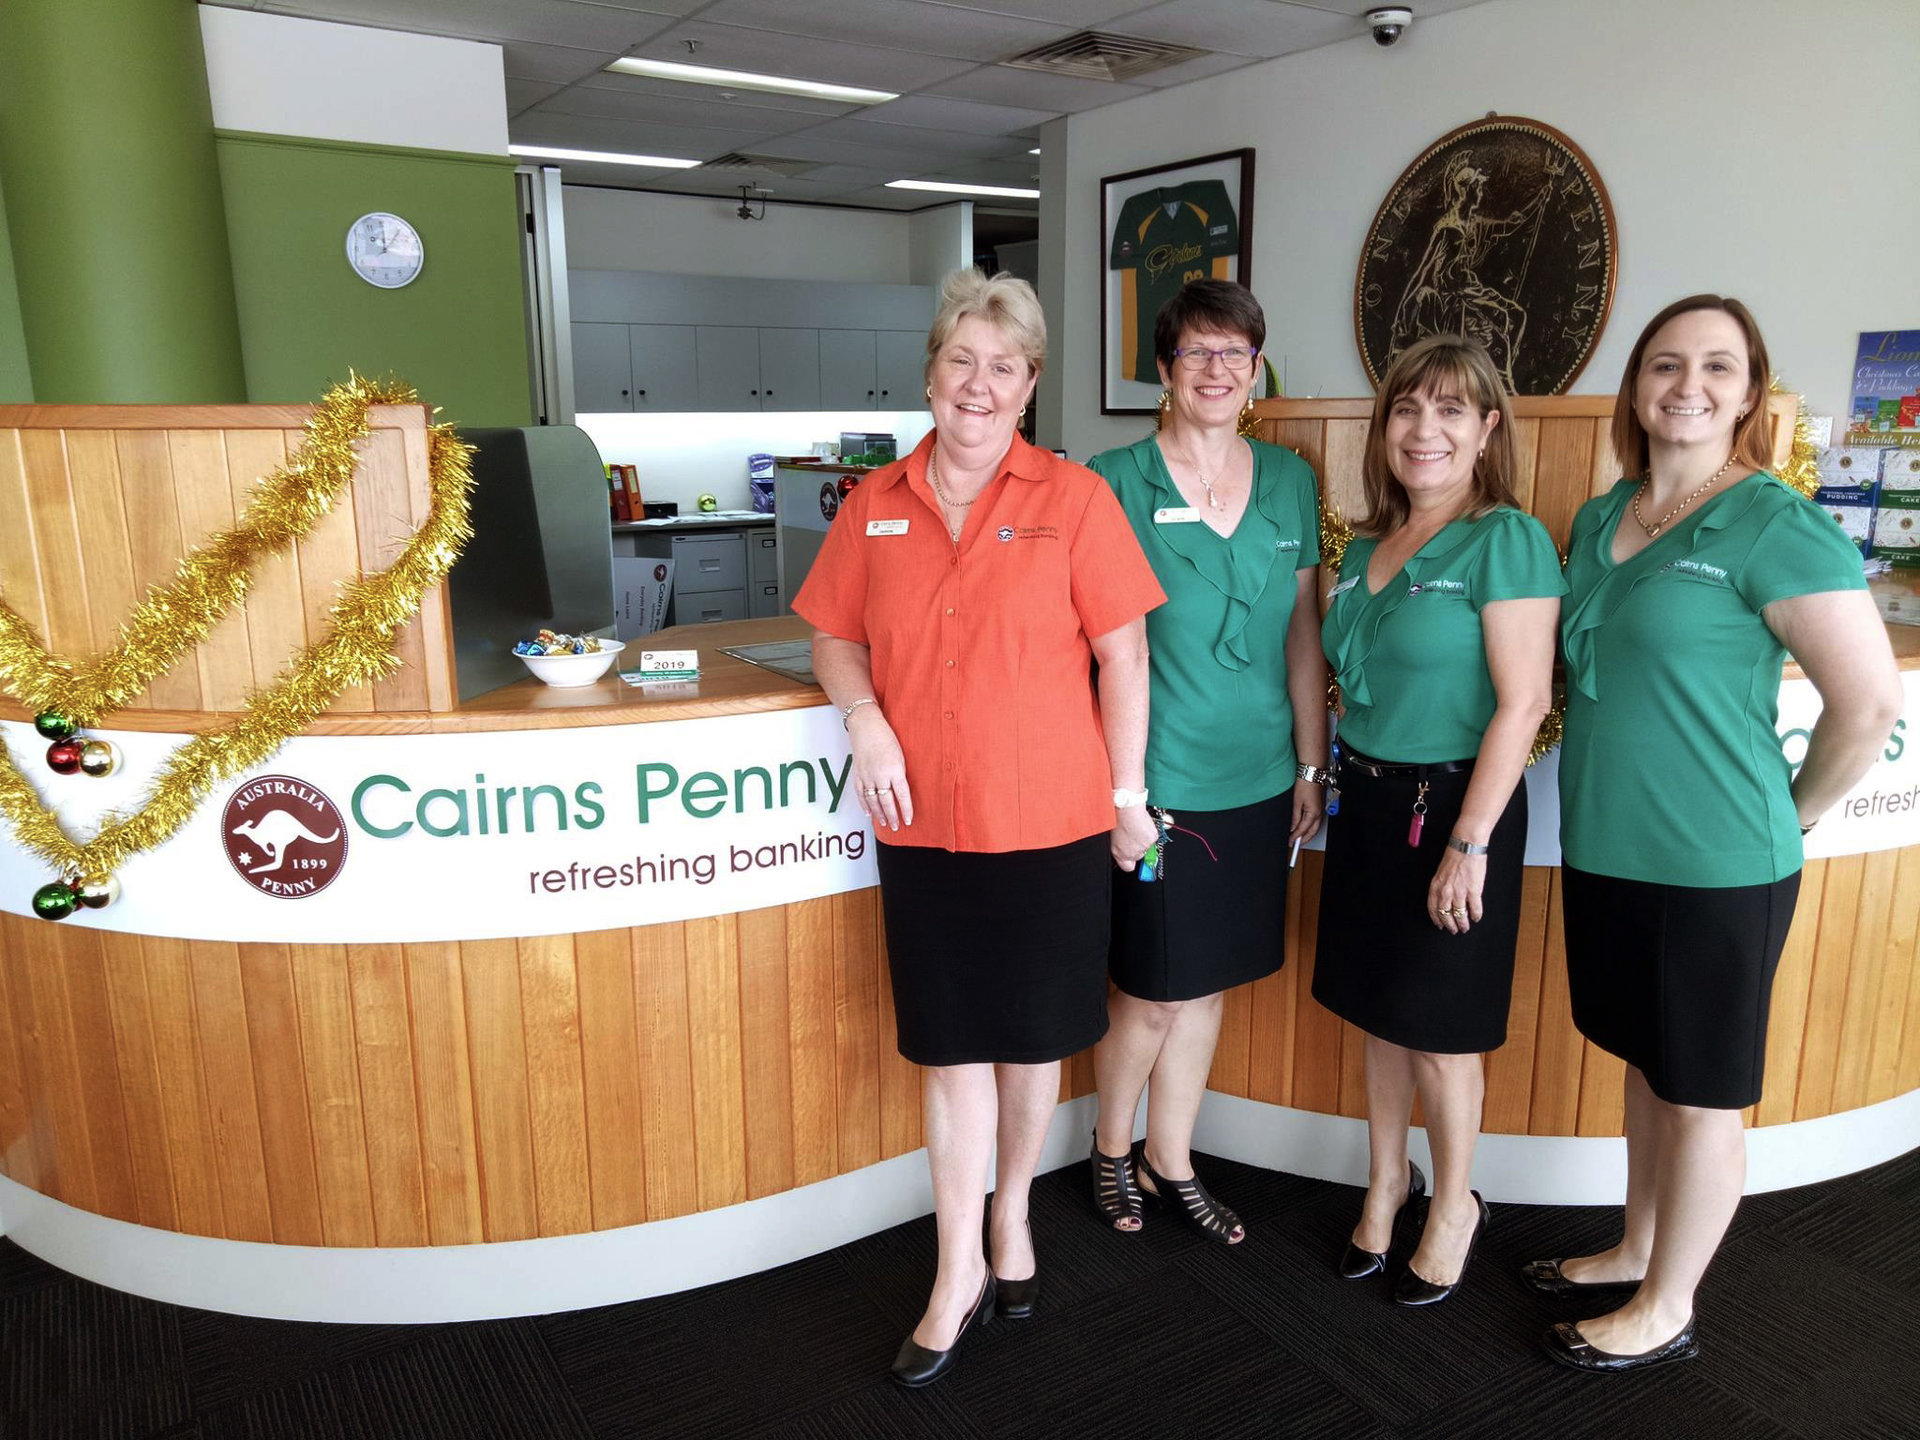 Cairns Bank employees posing inside the office